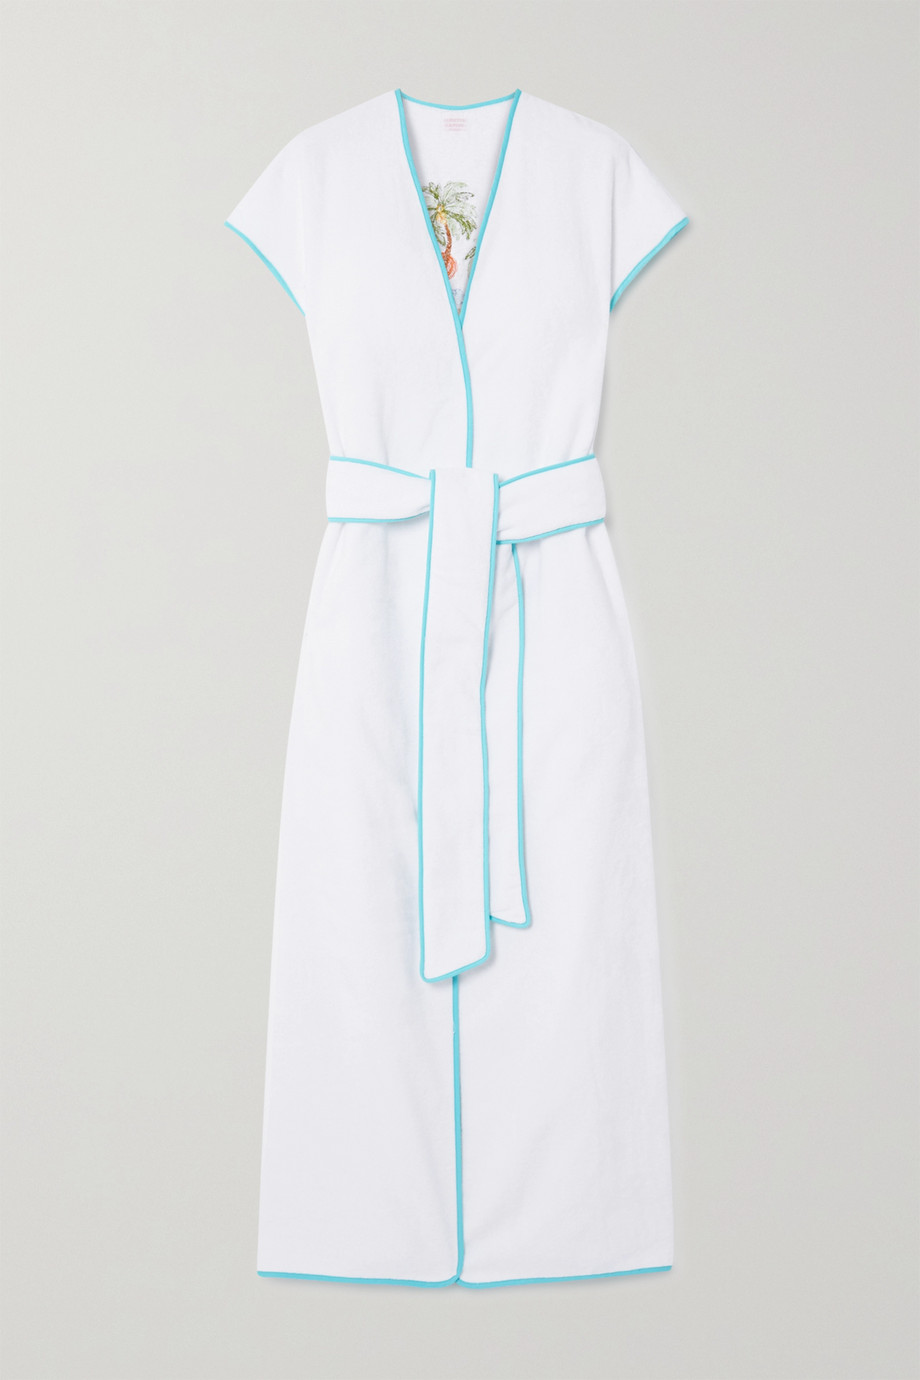 Loretta Caponi Sara belted embroidered cotton-terry kimono